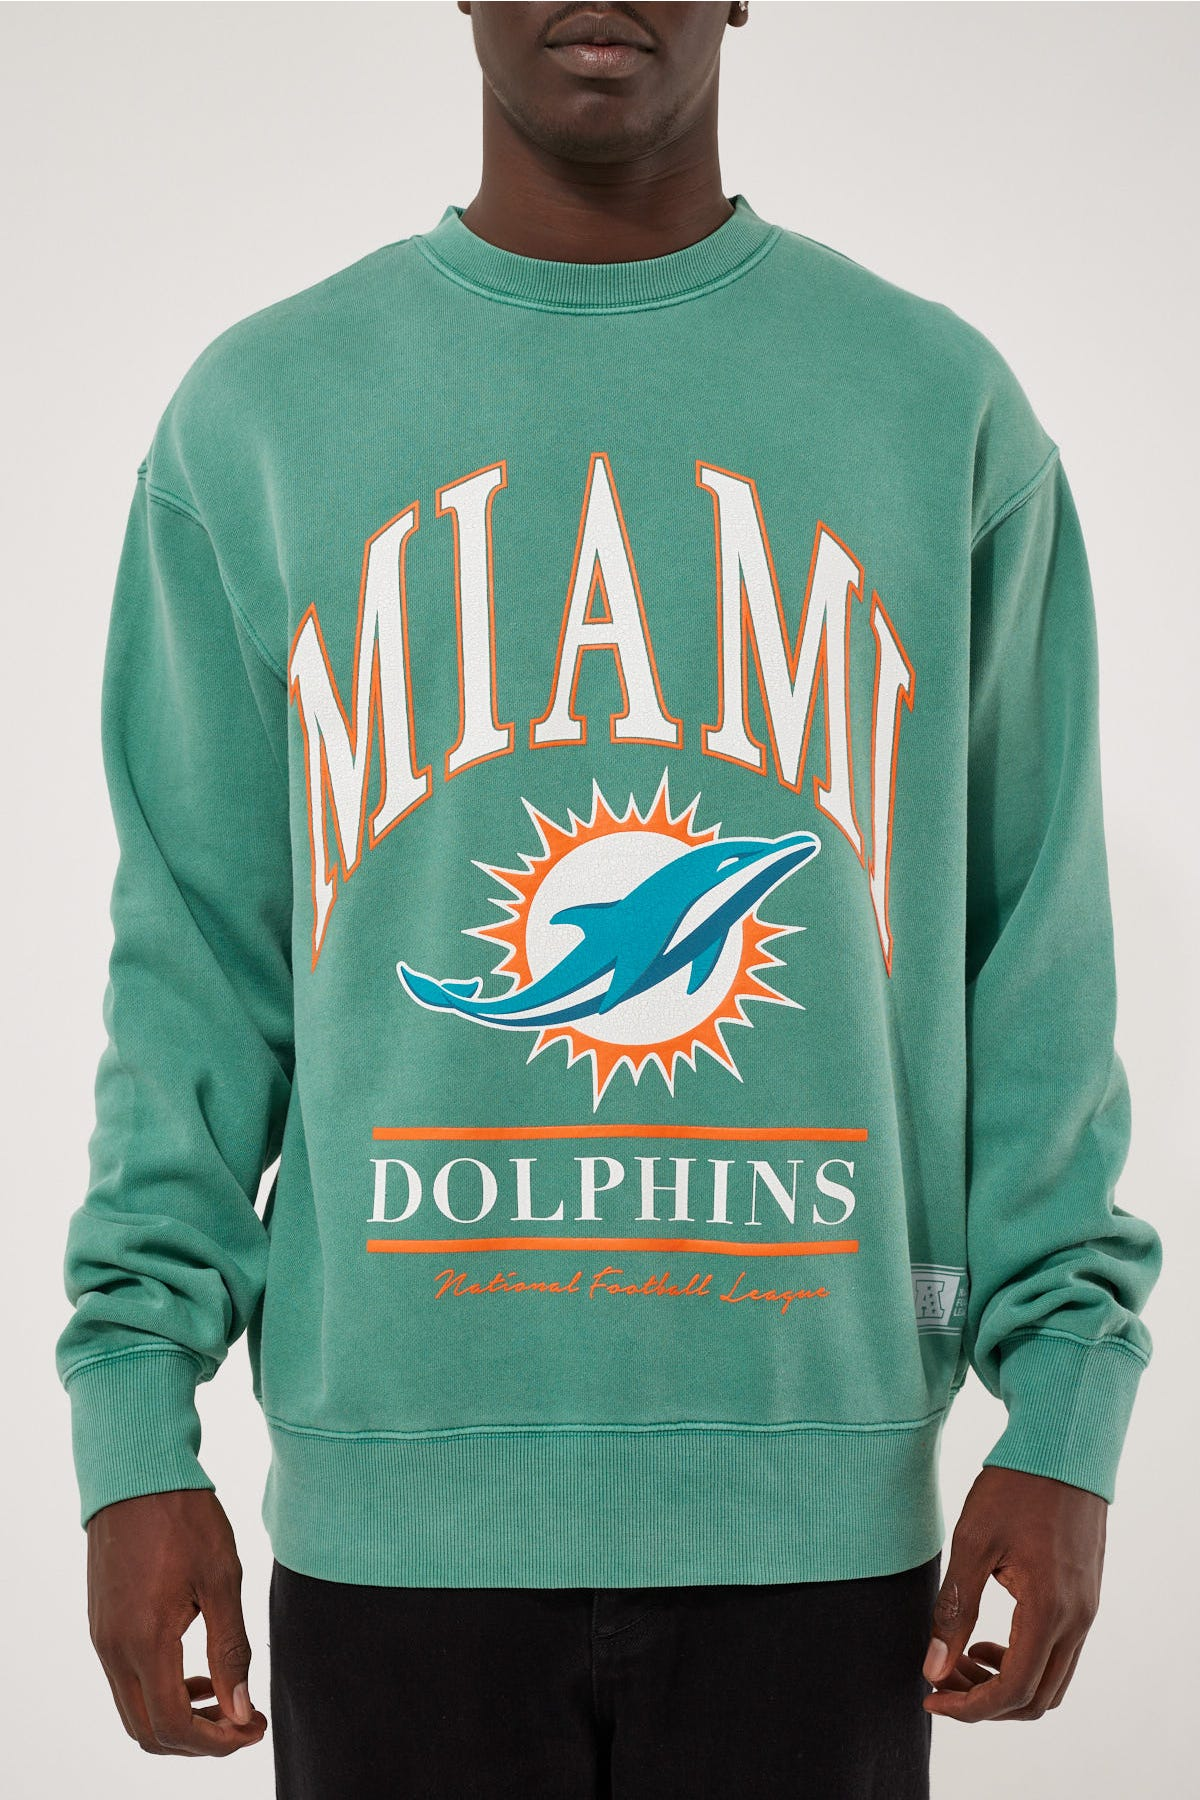 VINTAGE NFL ARCH CREW - DOLPHINS - TEAL